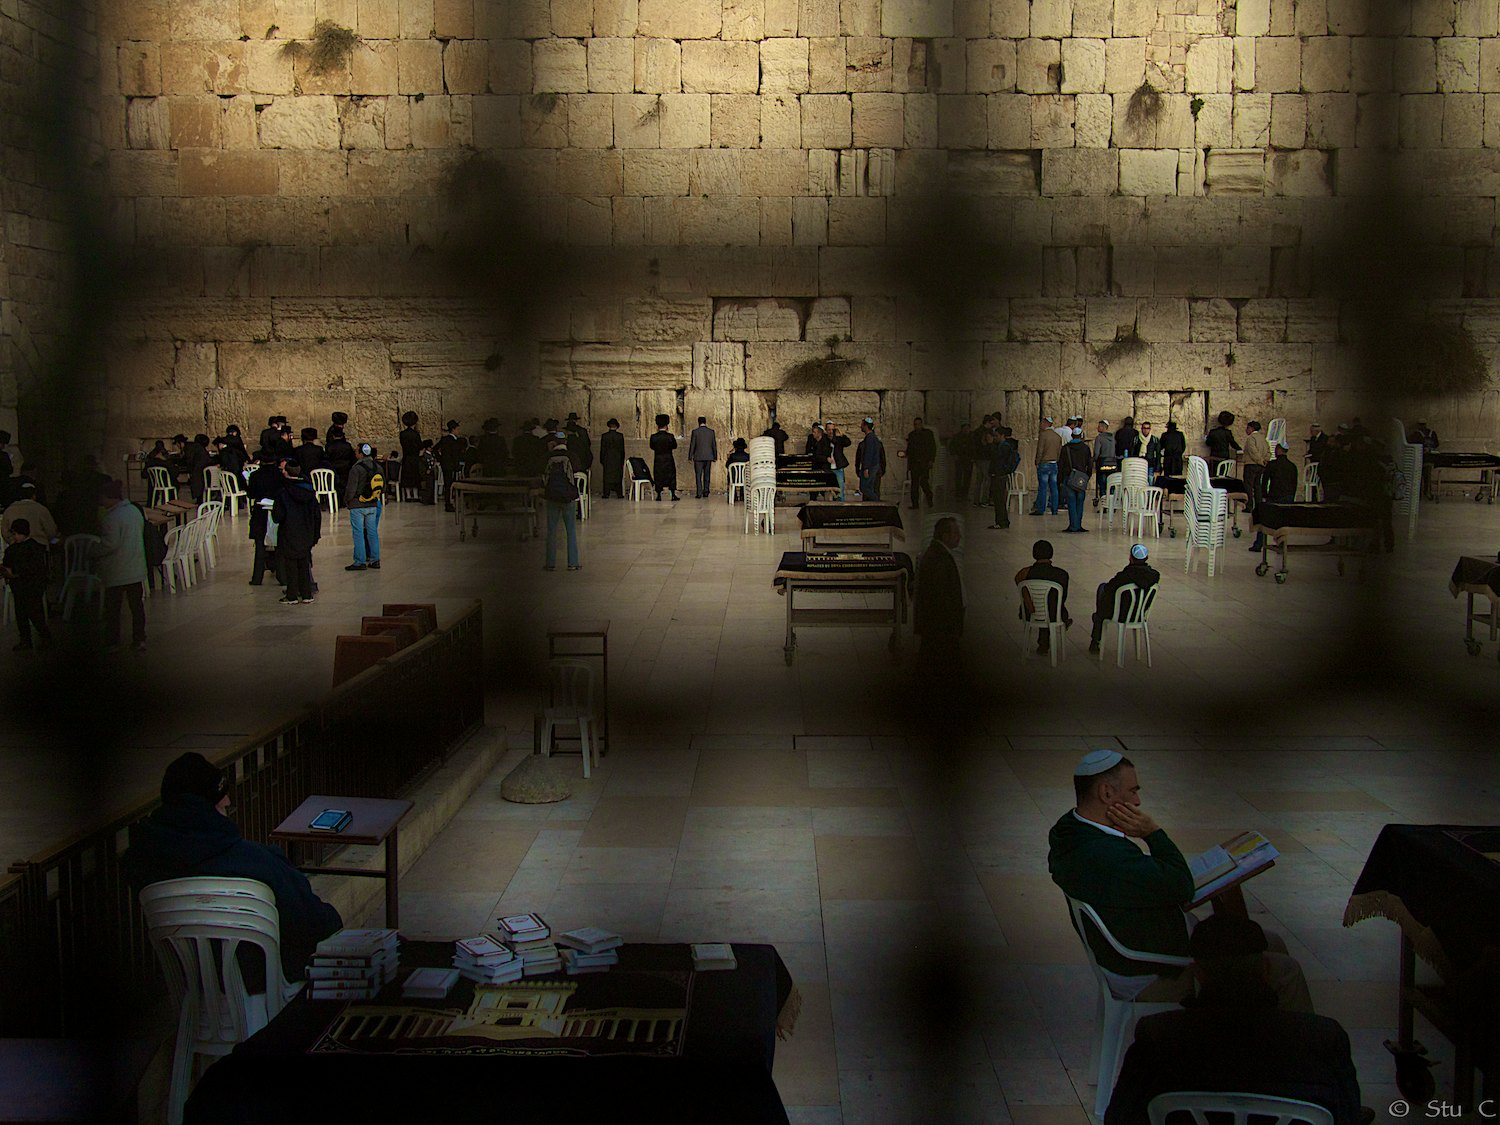 Western Wall seen through security fence providing space for the devout, though entry is not prohibited to others